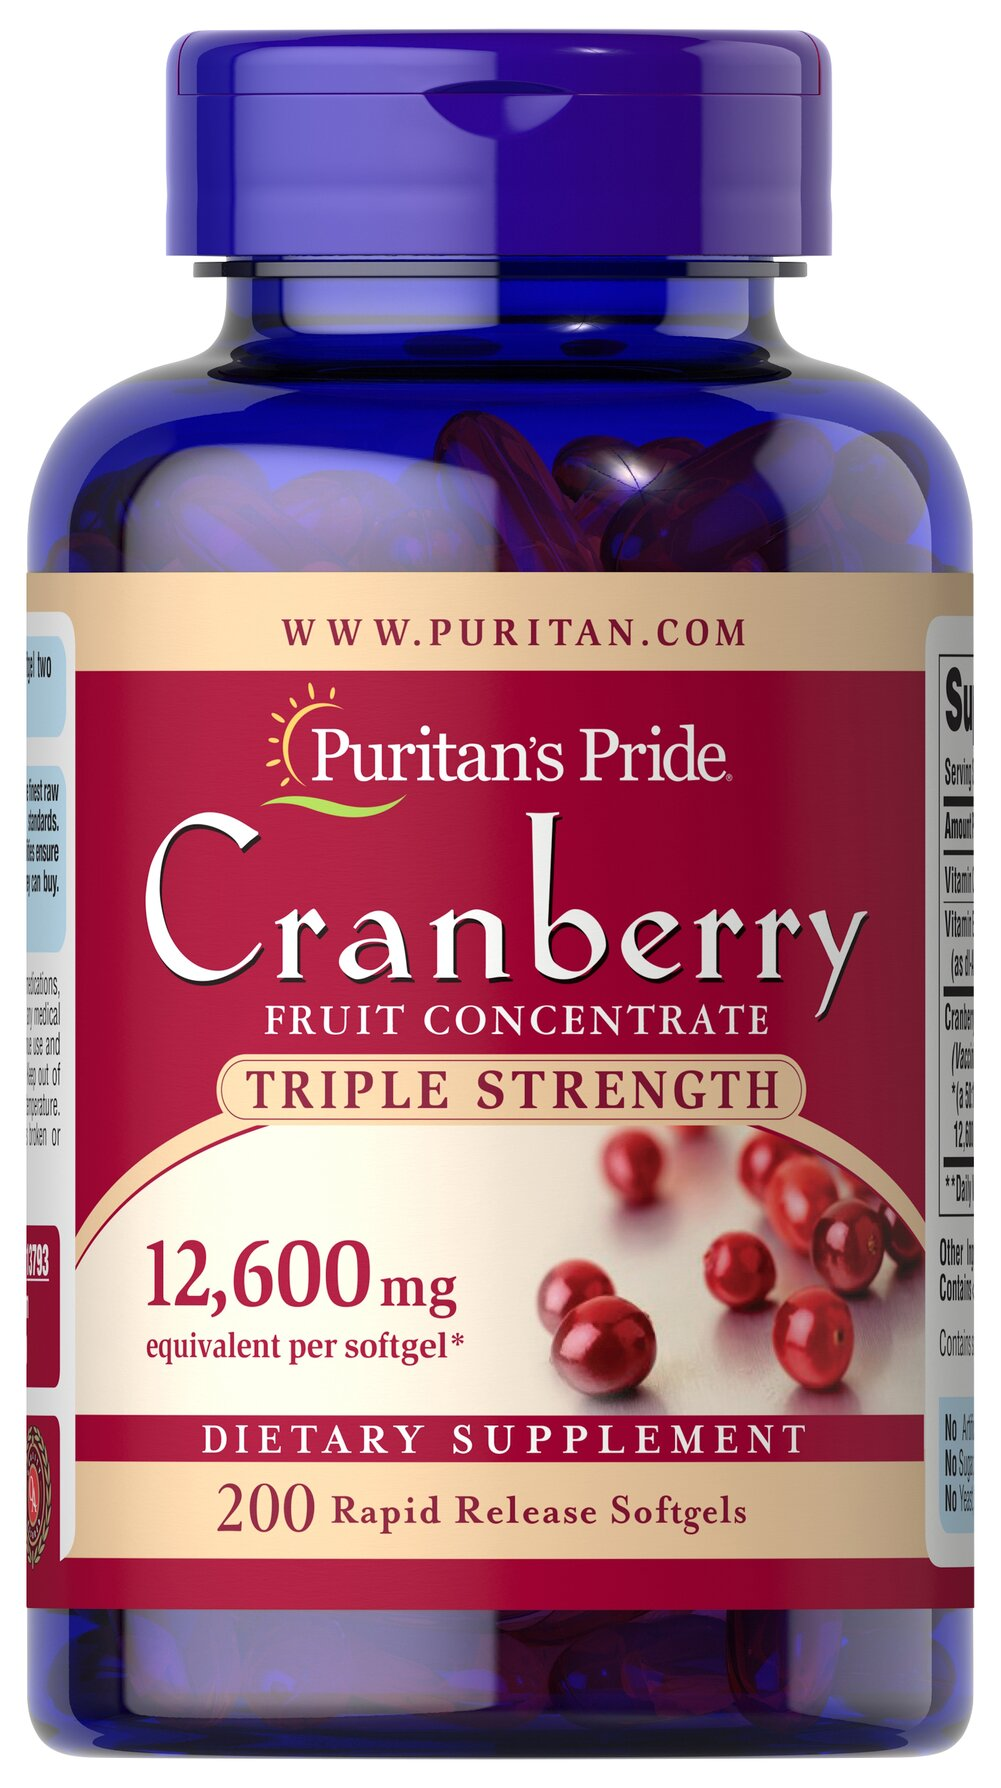 Triple Strength Cranberry Fruit Concentrate 12,600 mg <p>Supports Urinary and Immune System Health**</p><p>Triple Strength Cranberry Concentrate contains 12,600 mg of cranberry concentrate per serving.</p><p>Cranberries contain the nutritional benefits of proanthocyanidins.** This product also contains Vitamin C, an antioxidant that plays a role in supporting immune function, plus Vitamin E.**</p> 200 Softgels 12600 mg $41.29